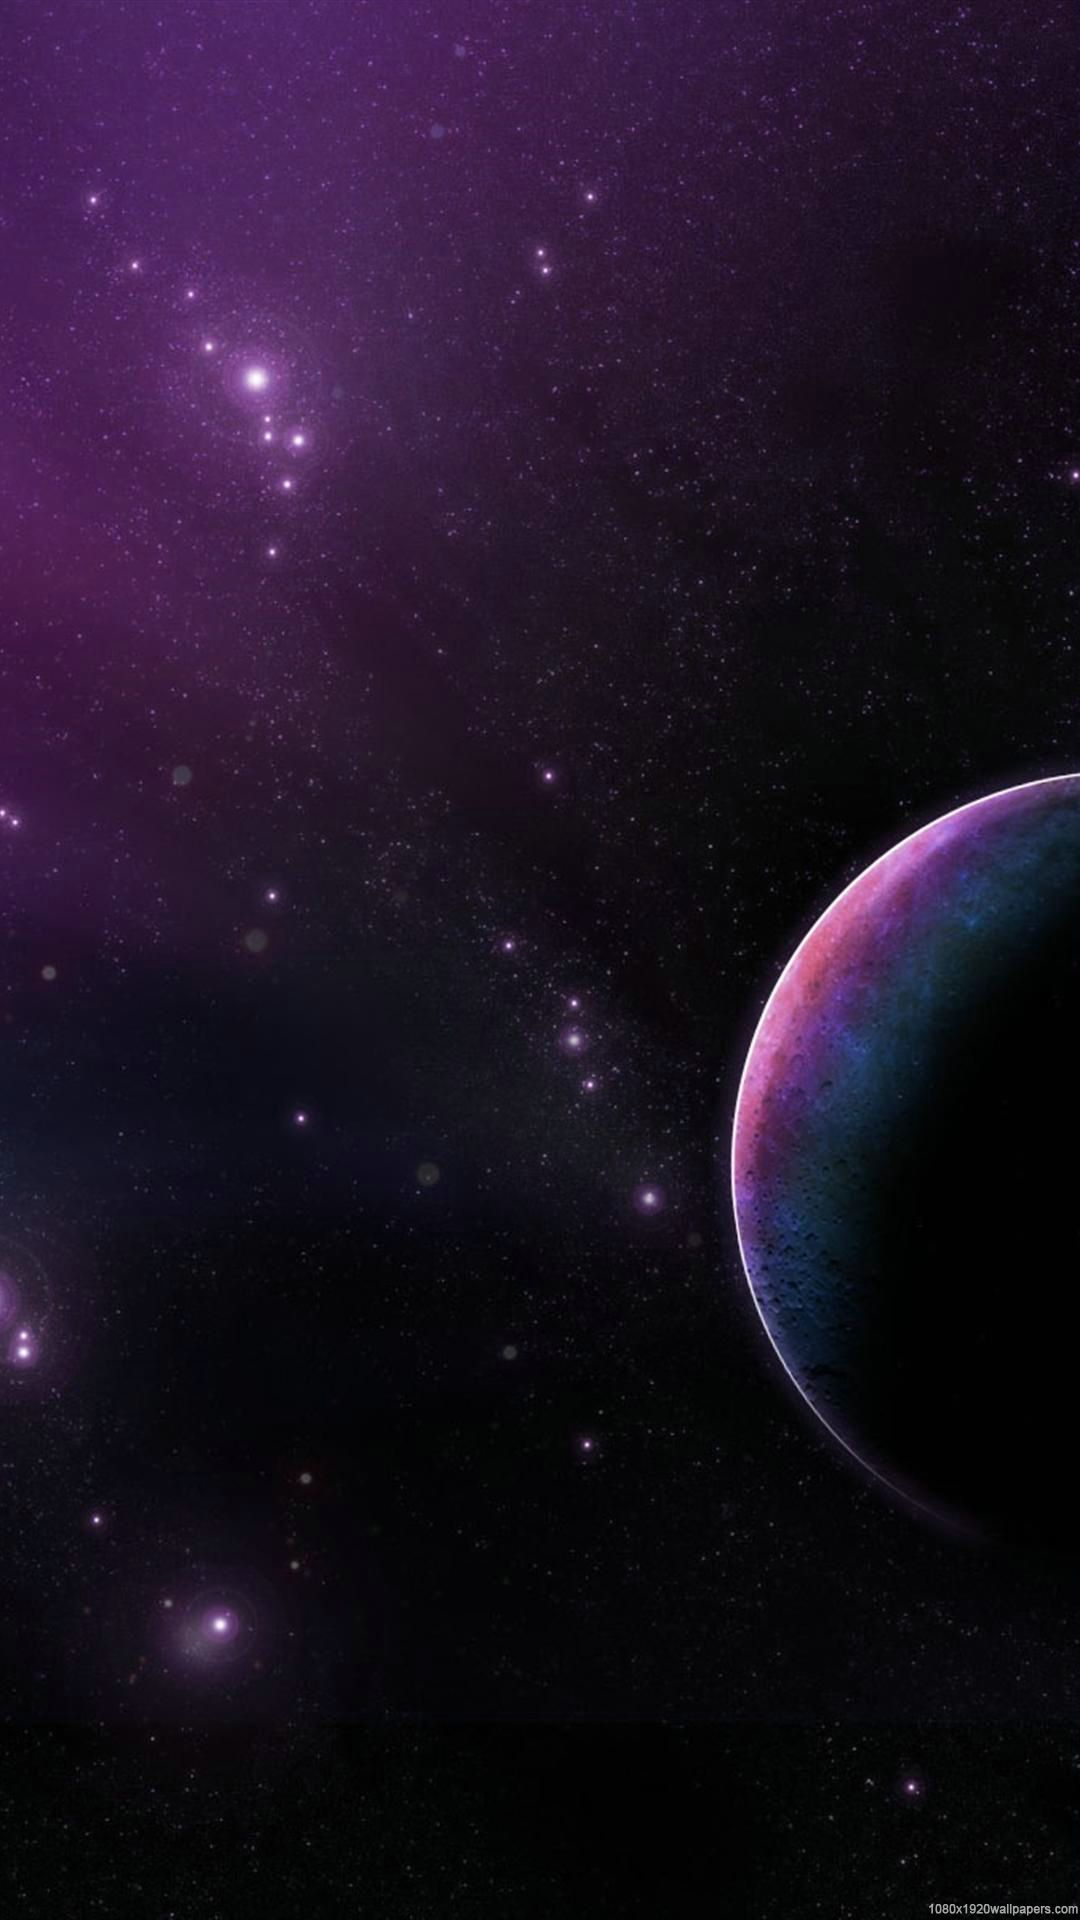 Images of Space Planets Hd Wallpaper Vertical SpaceHero